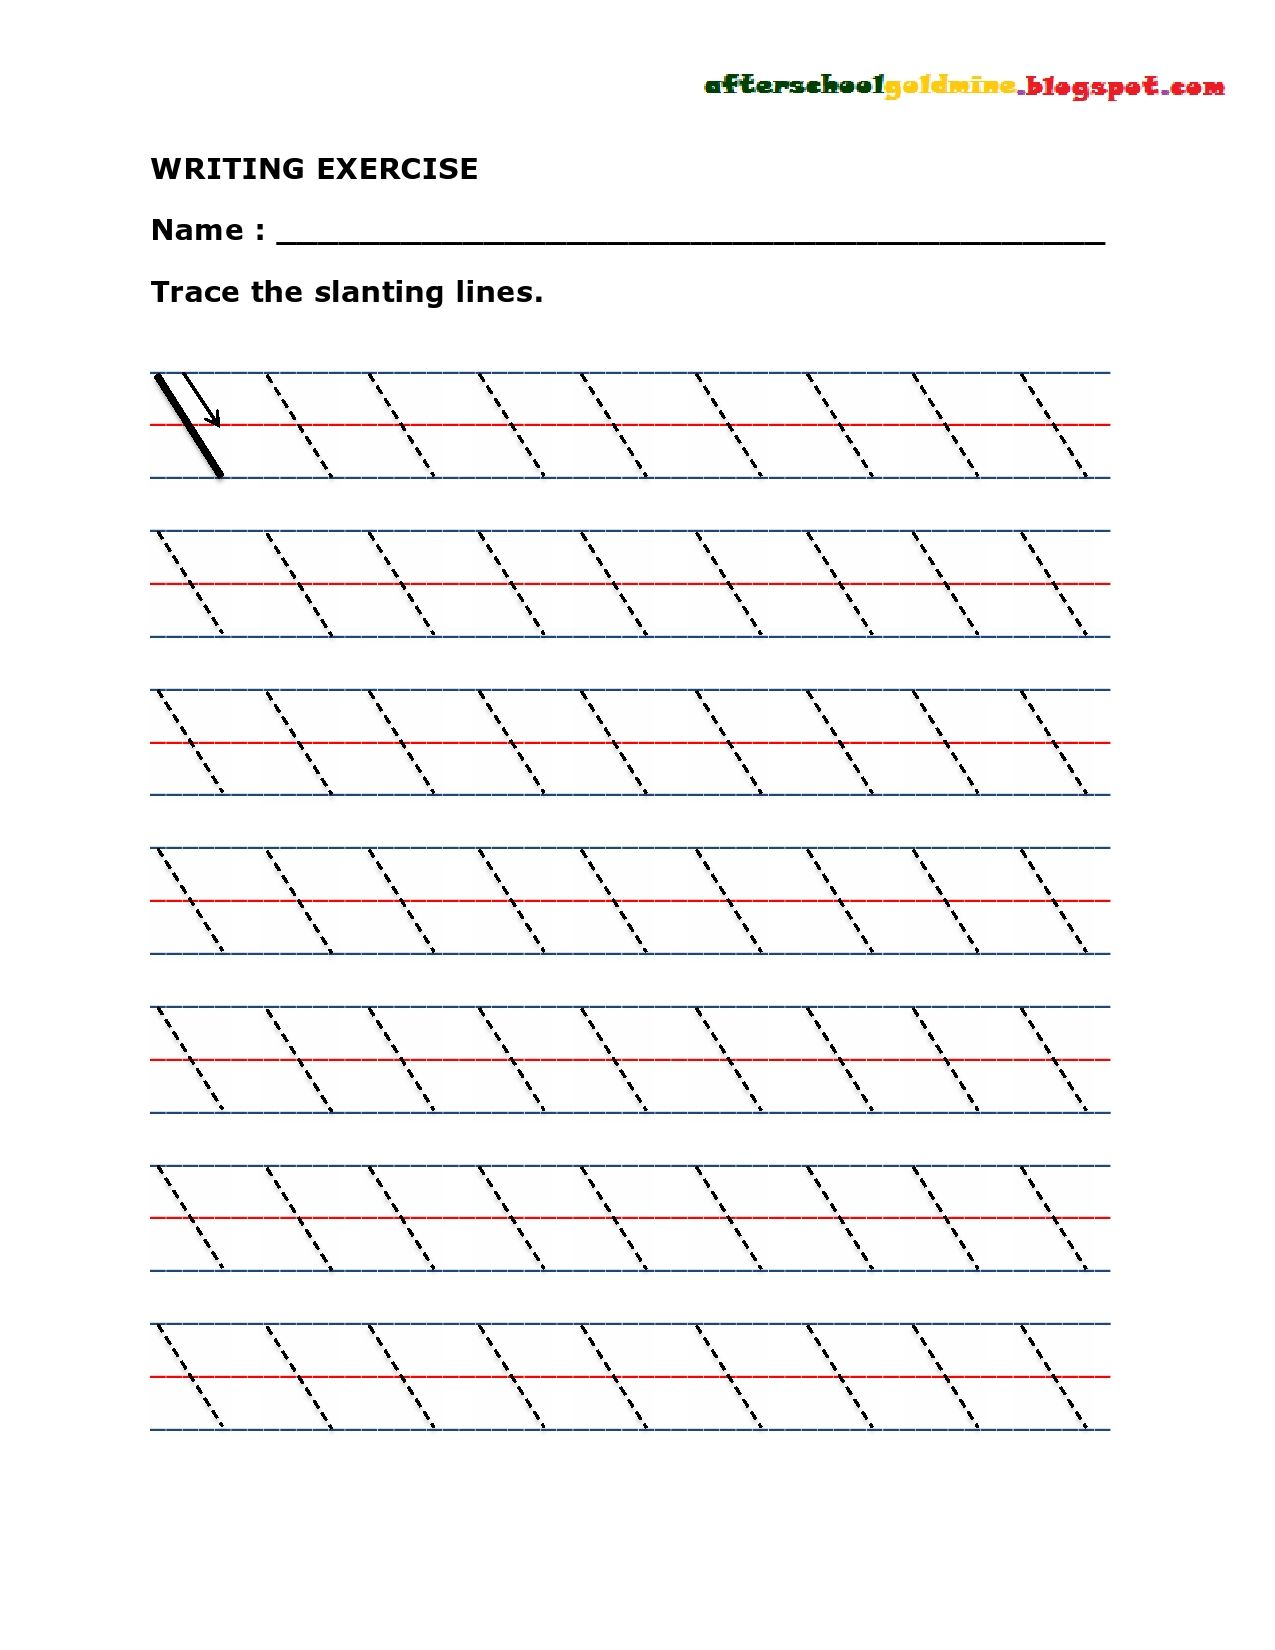 Writing Exercise Trace Lines Diagonal Writing Exercises Trace The Lines Slanting